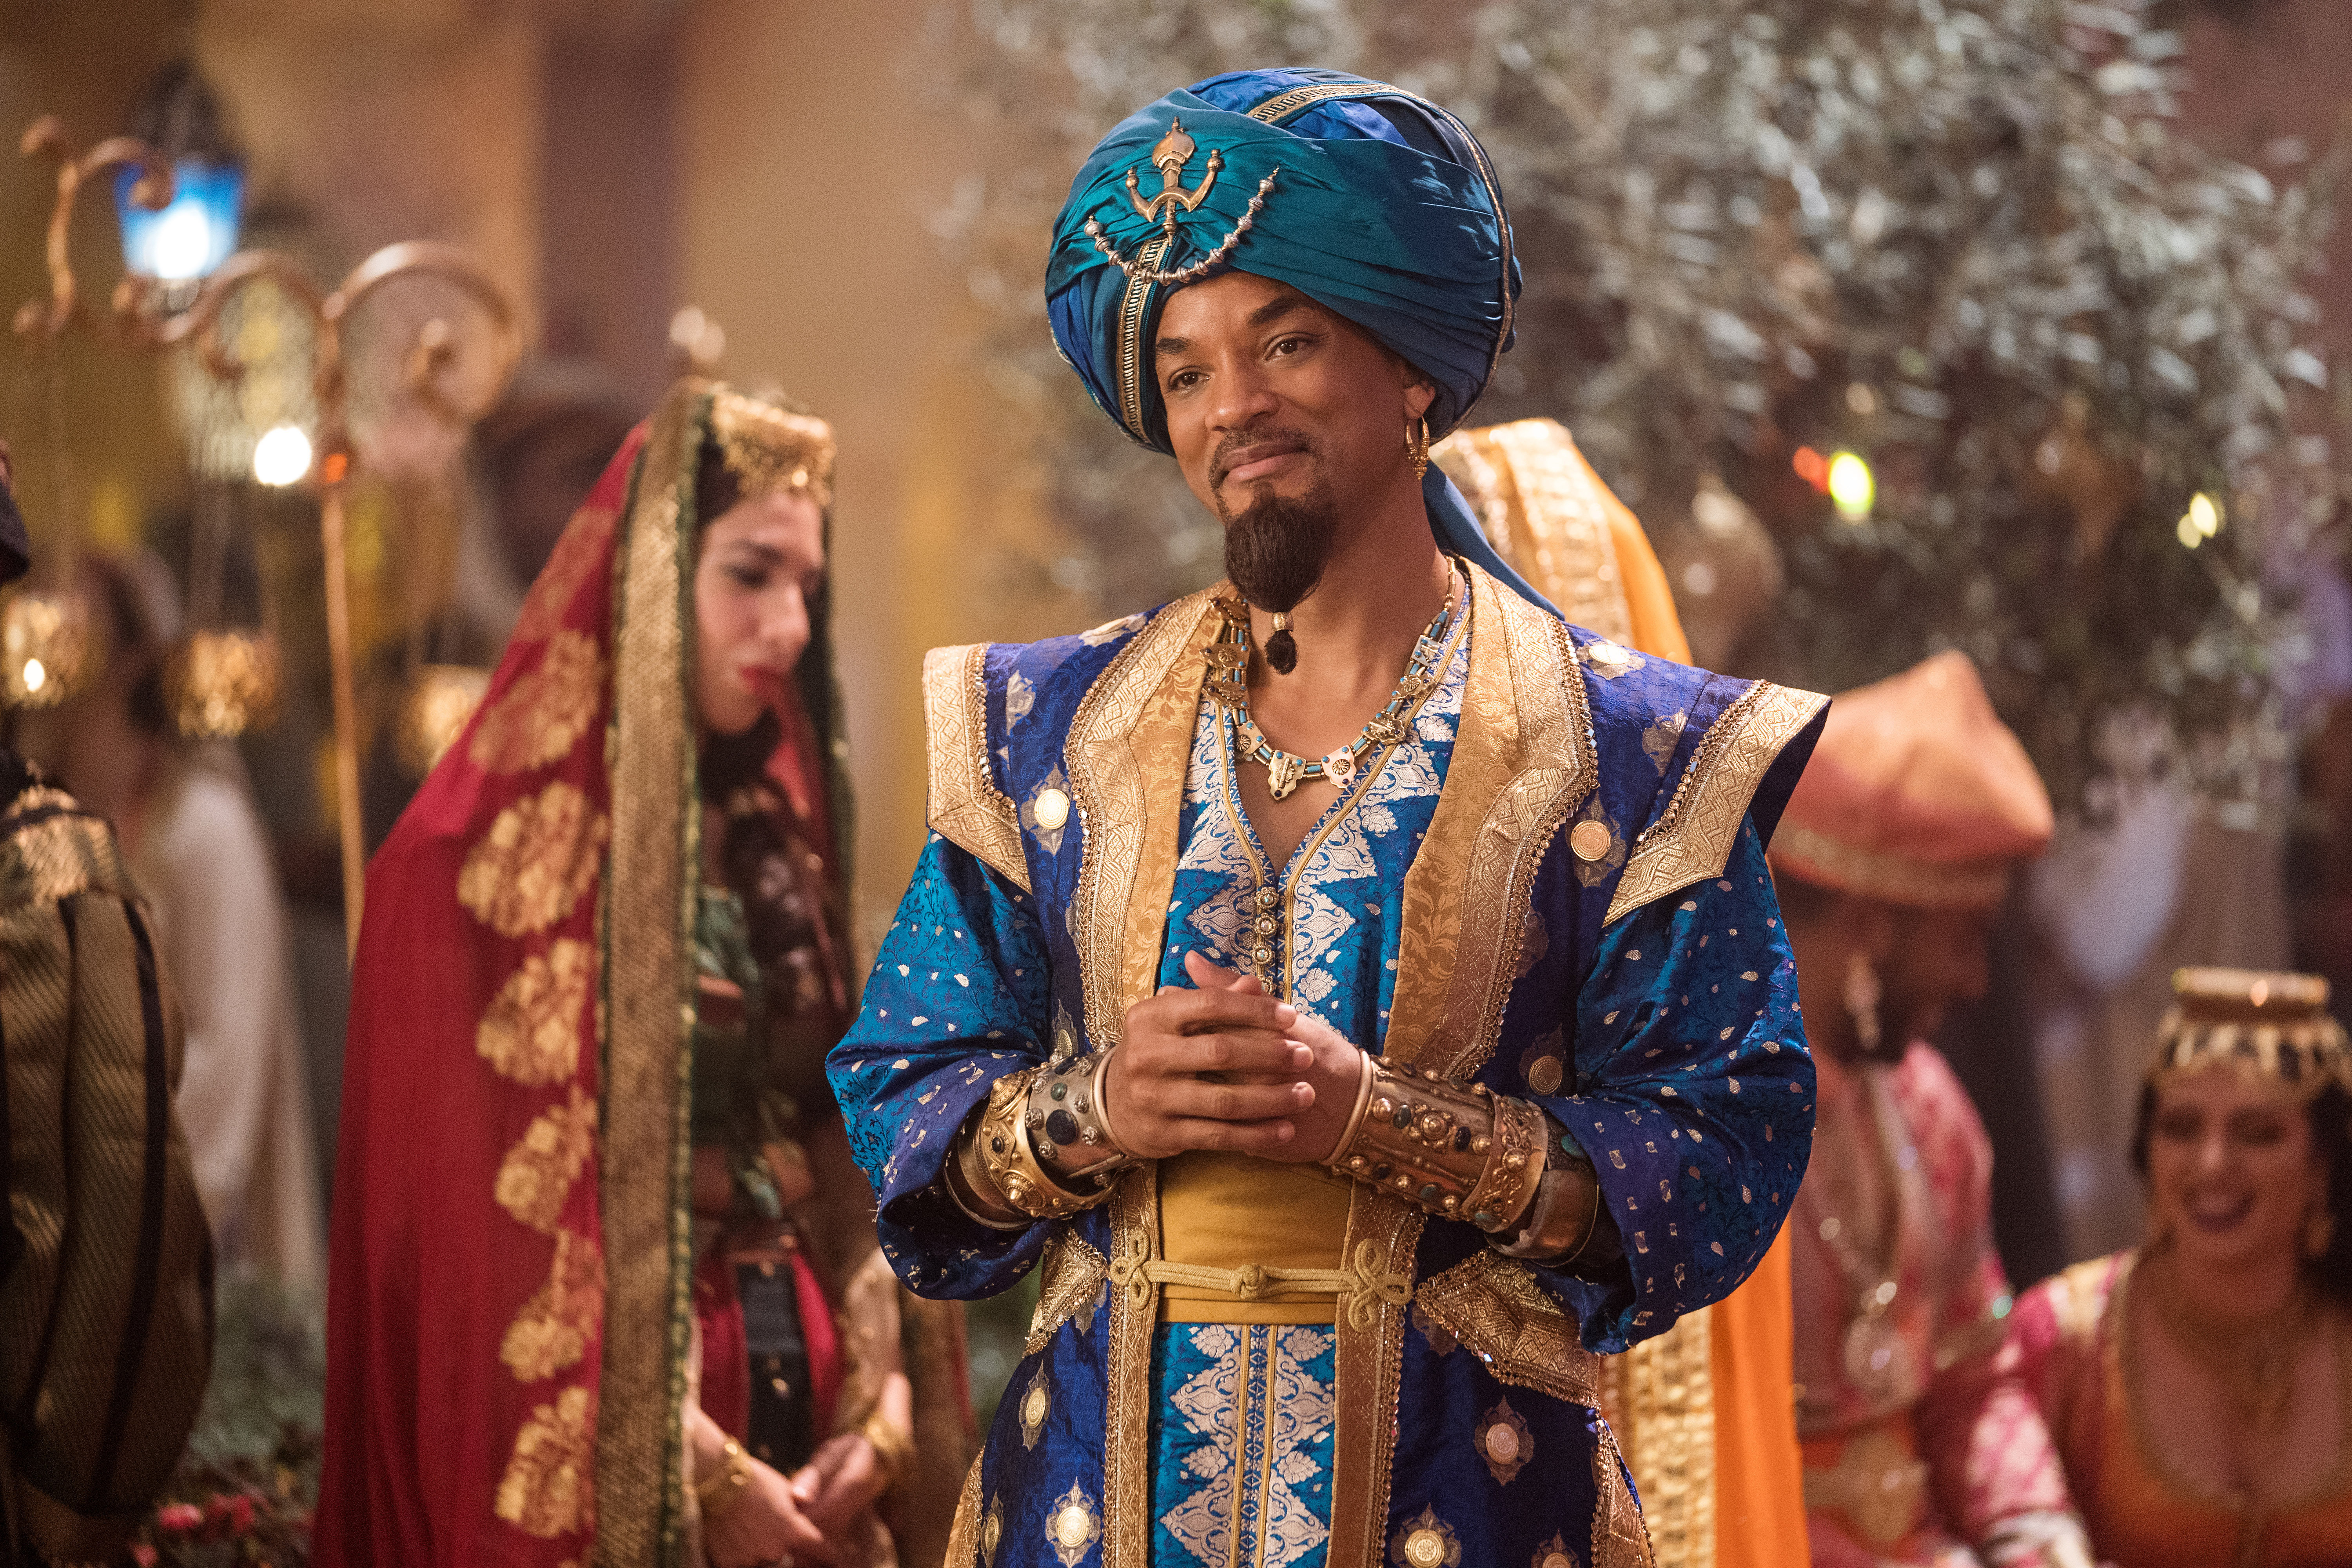 Will Smith as the Genie from Aladdin